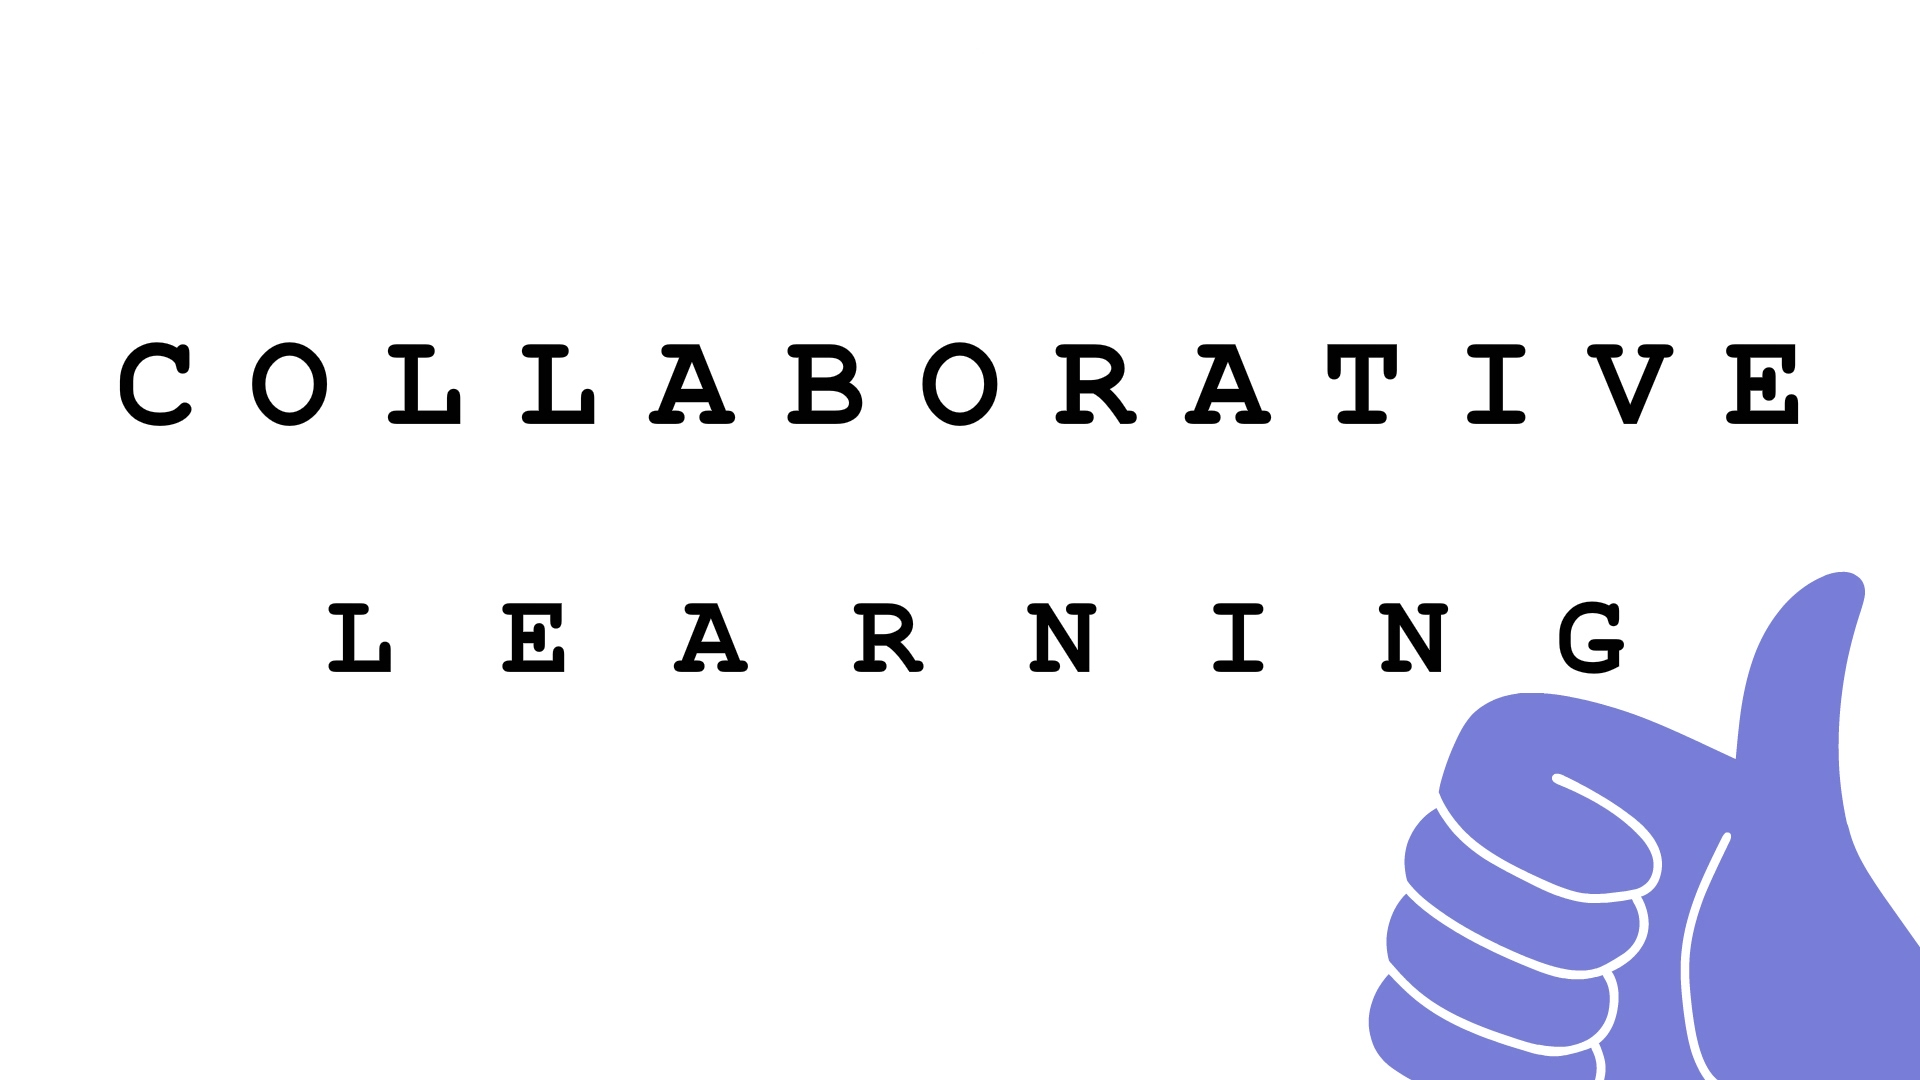 Intrepid_the_collaborative_learning_platform